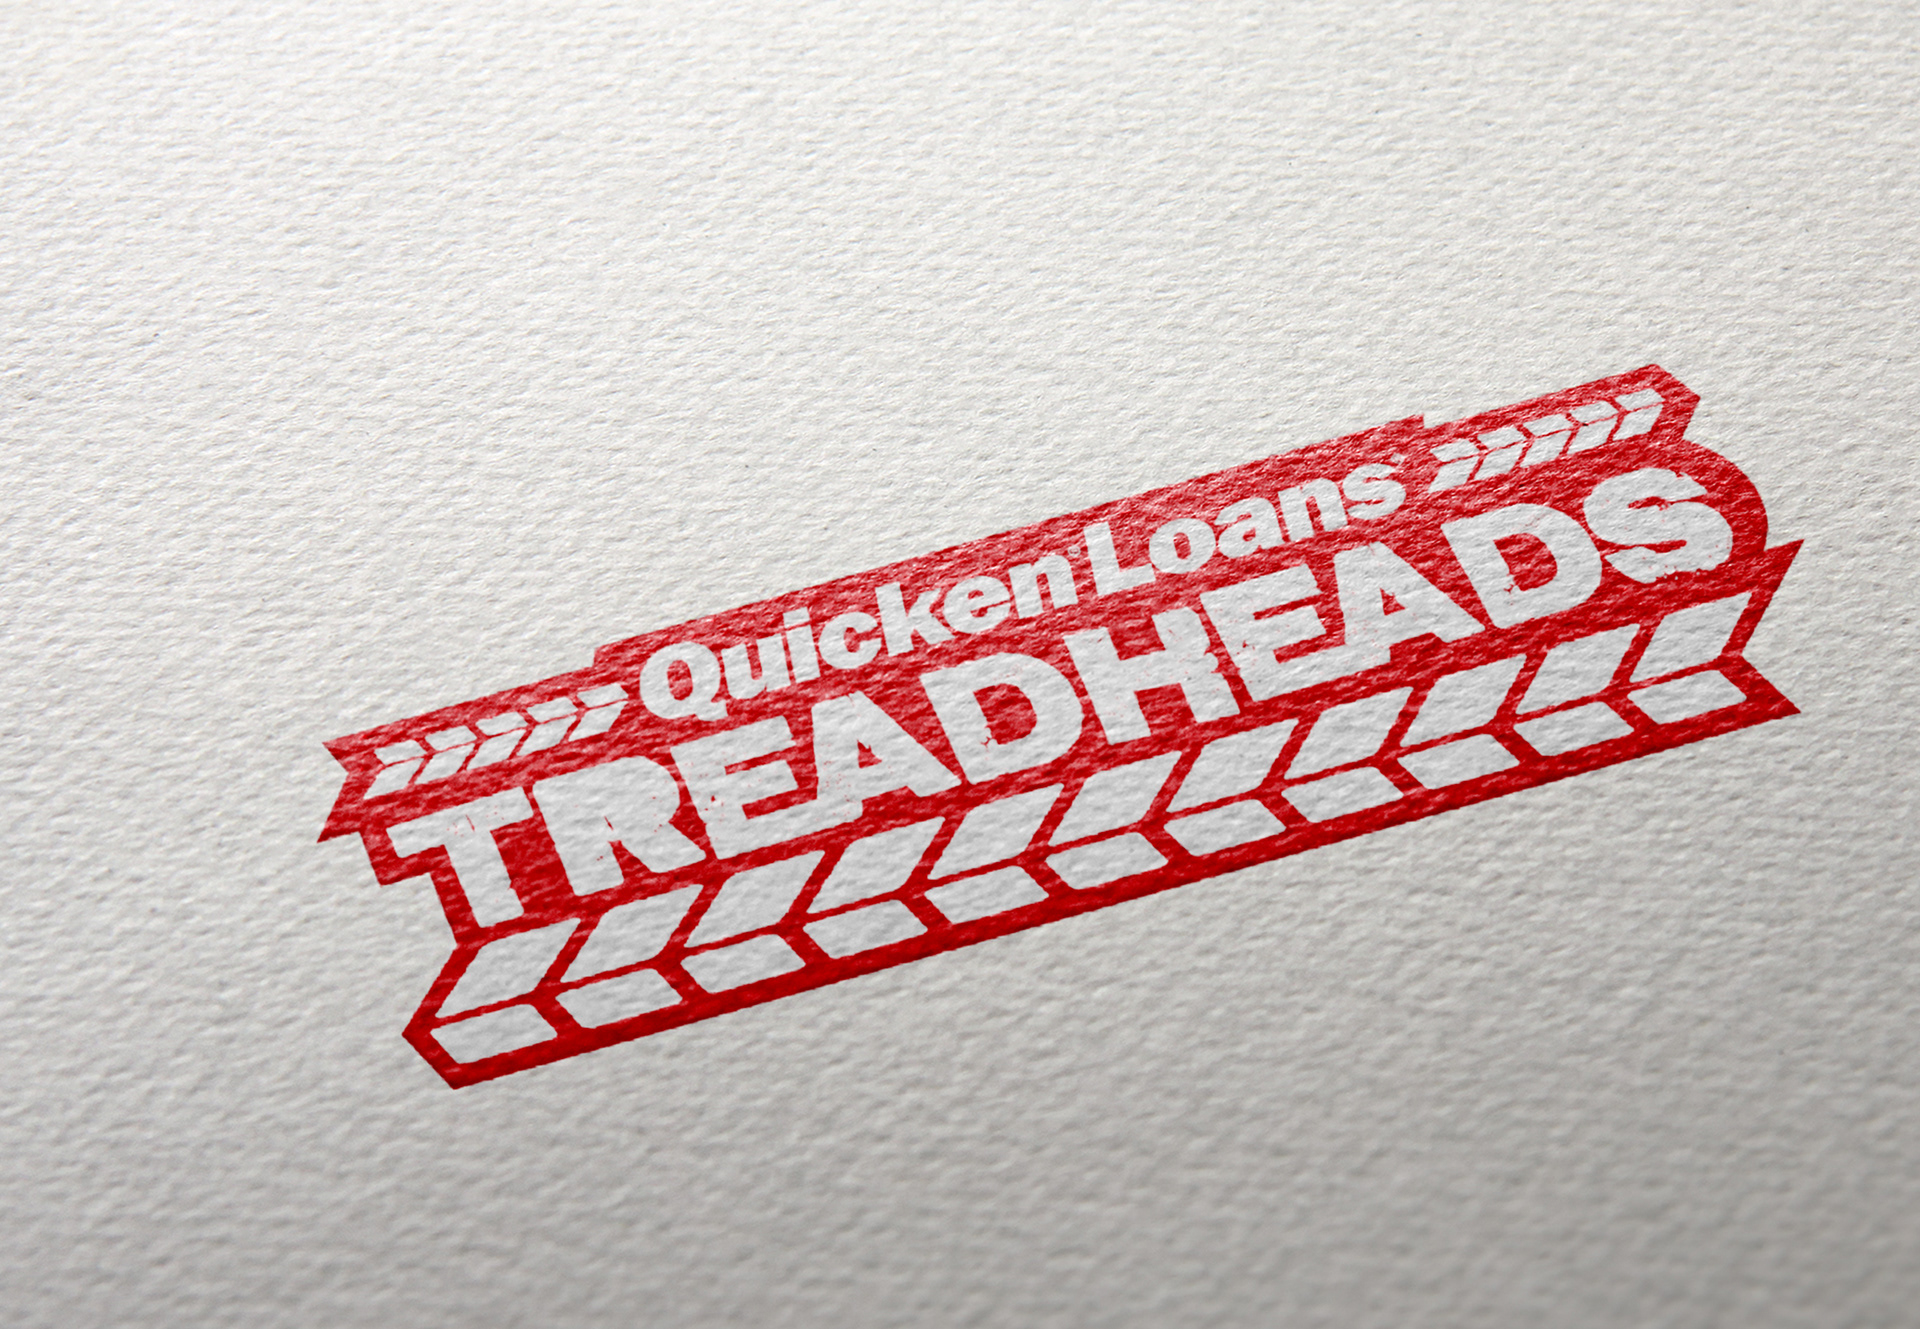 quicken-loans-racing-treadheads-logo.jpg